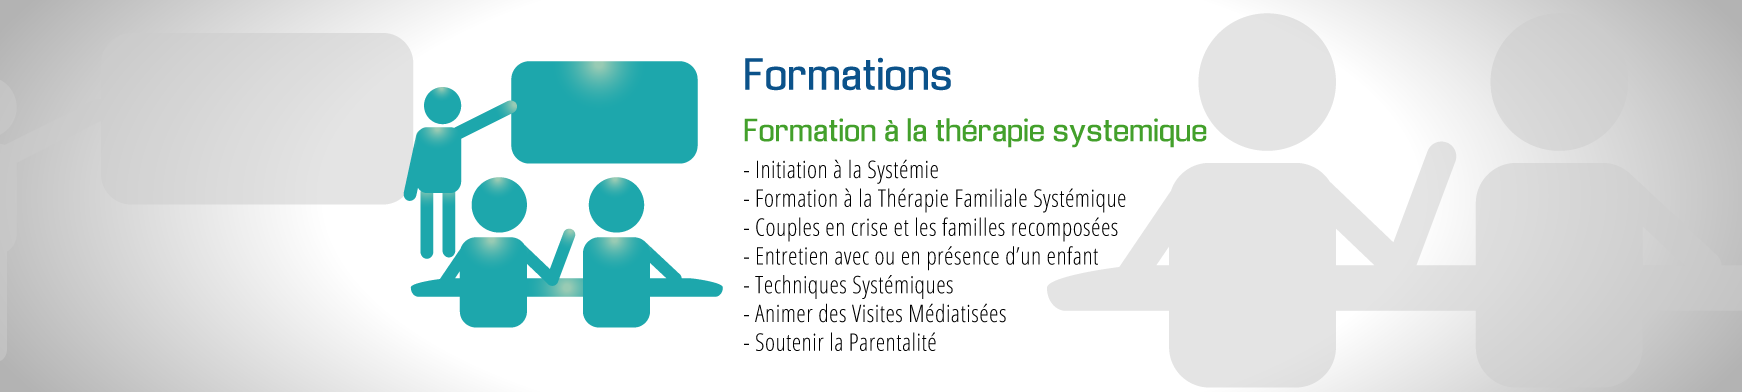 formation a la therapie systemeque